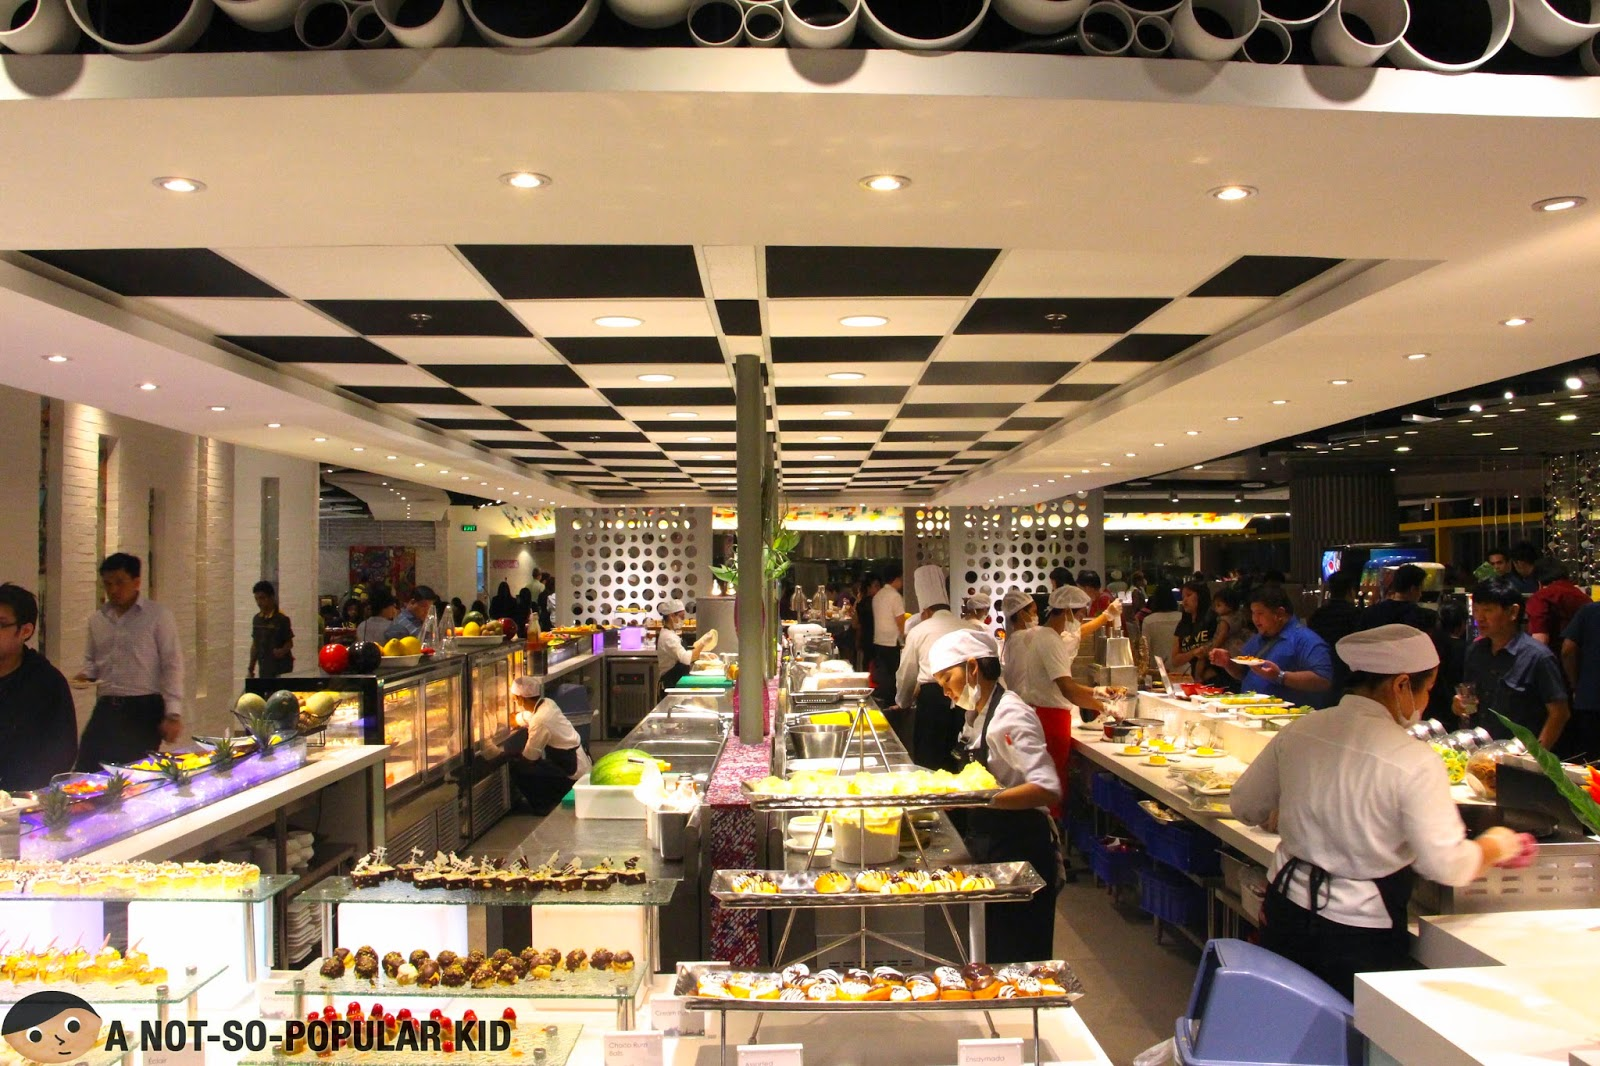 The spacious and sleek interior of Vikings in SM Megamall